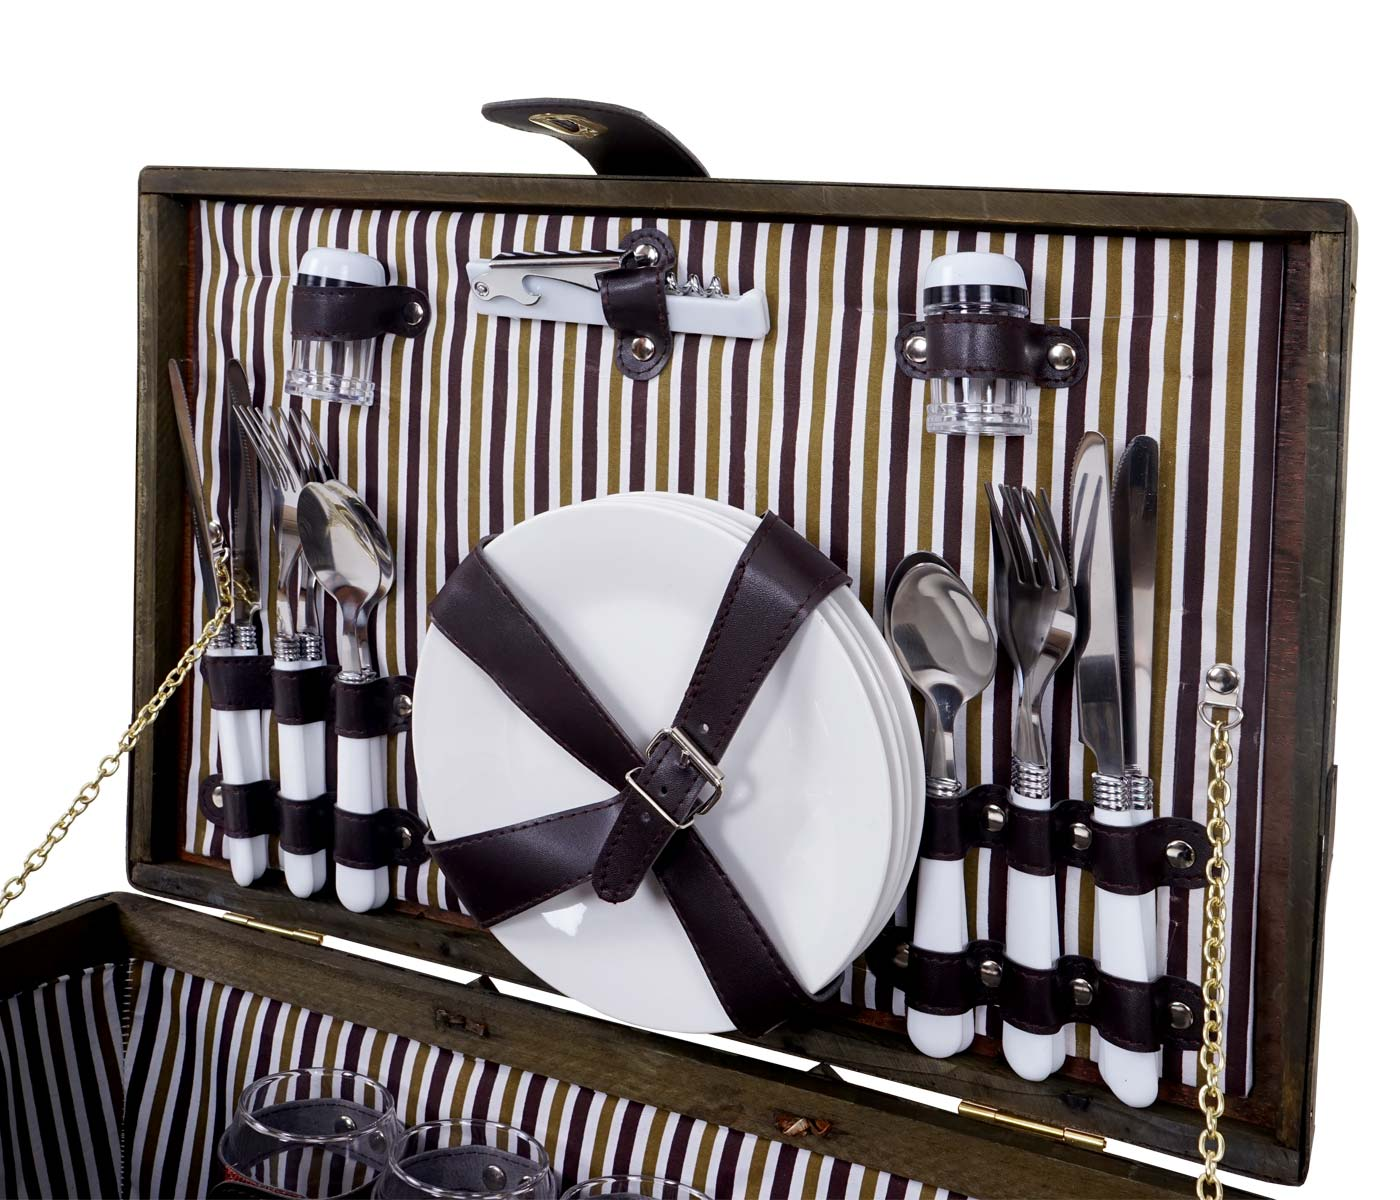 picknickkorb set f r 4 personen picknicktasche weiden korb porzellan glas edelstahl braun wei. Black Bedroom Furniture Sets. Home Design Ideas